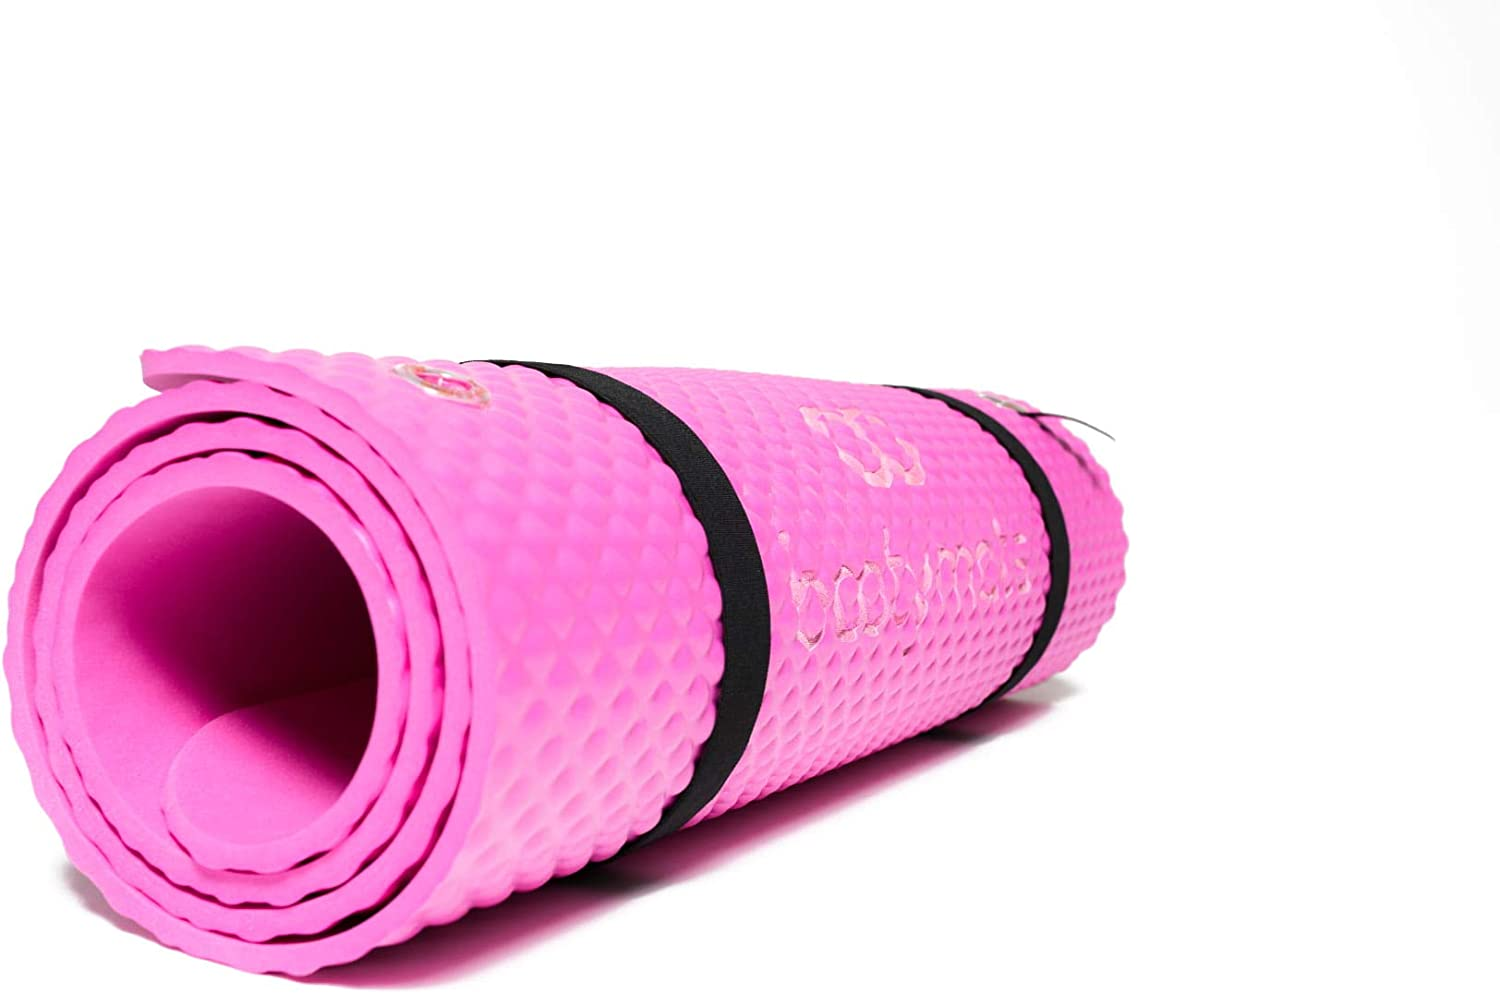 Fitnessmatte Multifunktion f/ür Jede Art von Workout: Fitness Stretching Pilates ABS Bootymats Gymnastikmatte Ma/ße: 160 x 60 cm